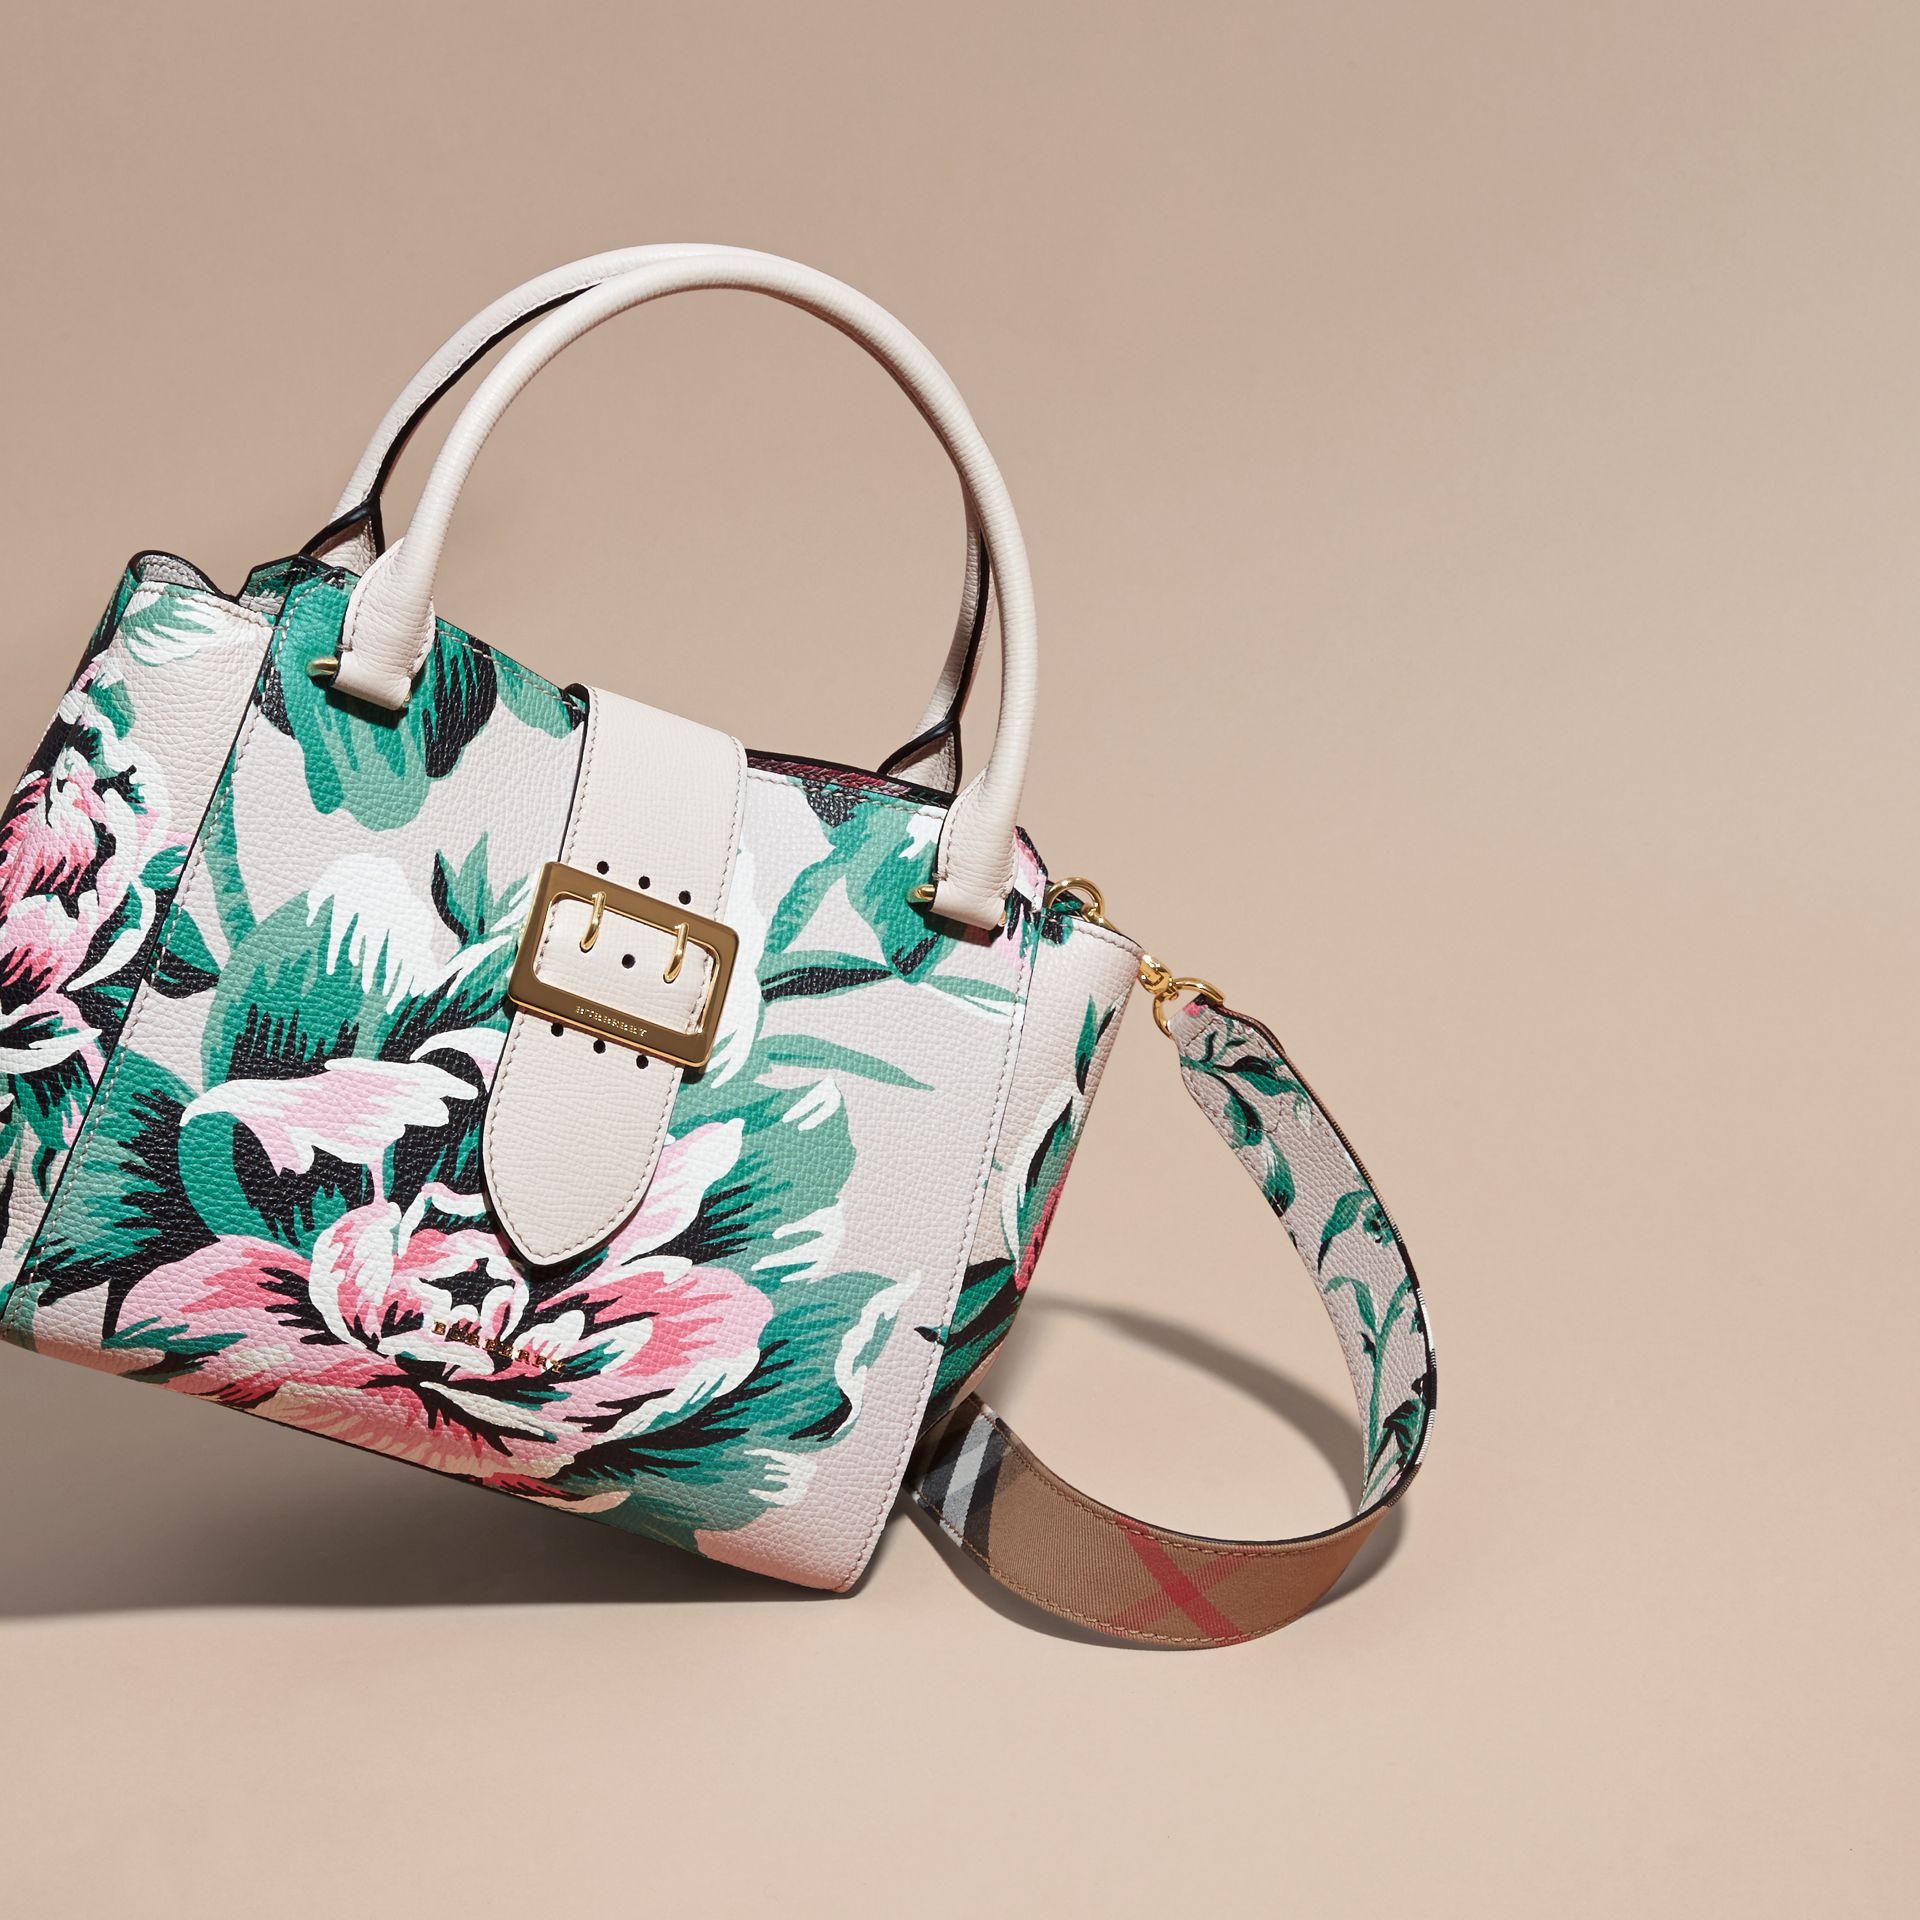 The Medium Buckle Tote in Peony Rose Print Leather in Natural/emerald Green - gallery image 8